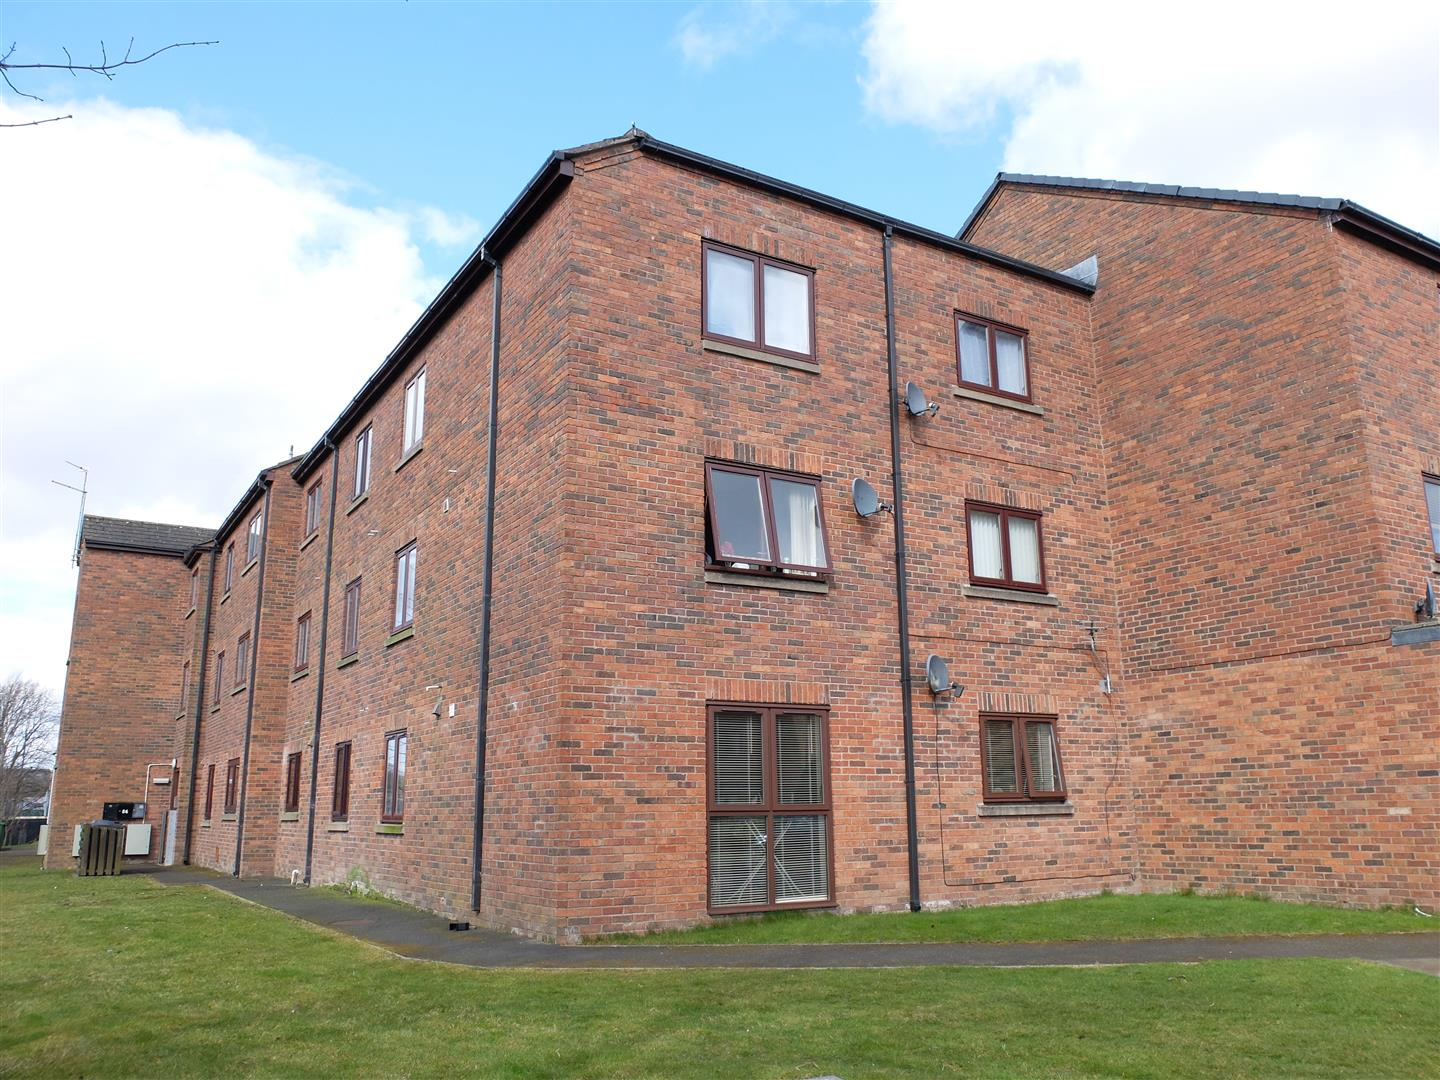 50 Caldew Maltings Bridge Lane Carlisle 1 Bedroom Flat For Sale